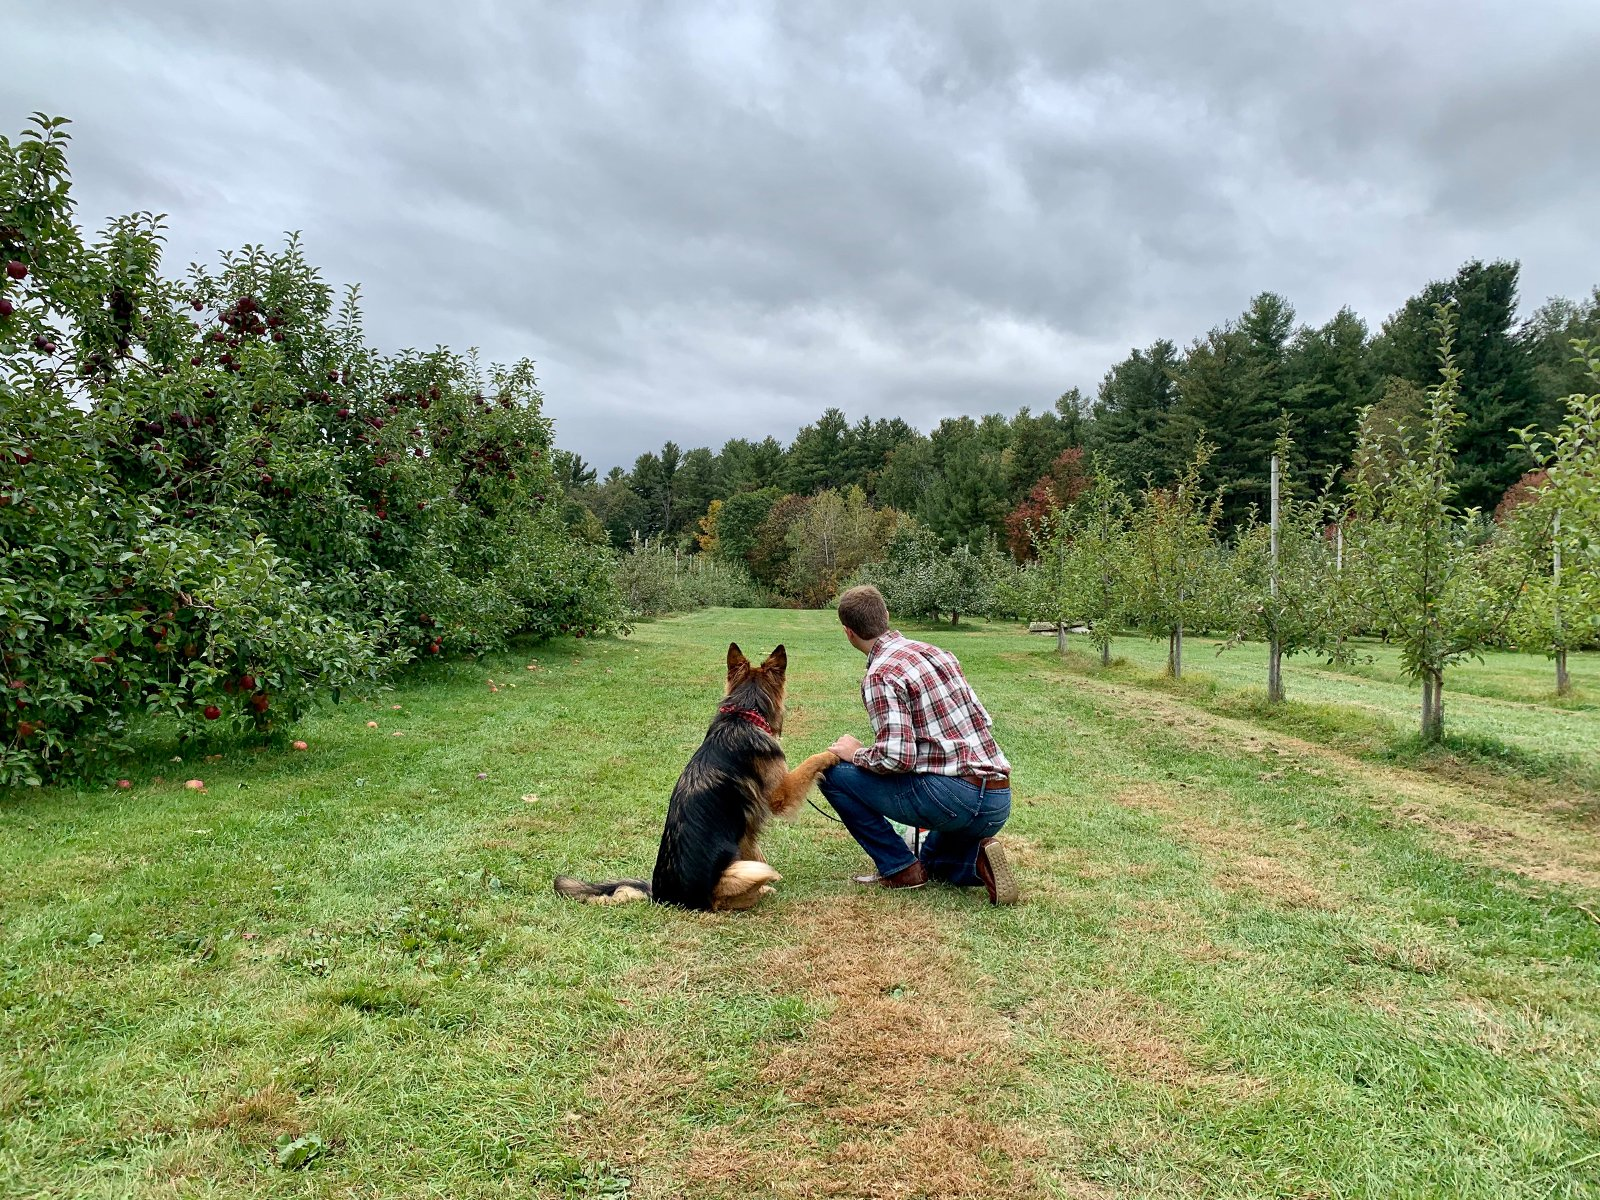 a man picking apples with his dog at Doe Orchards in Harvard, MA